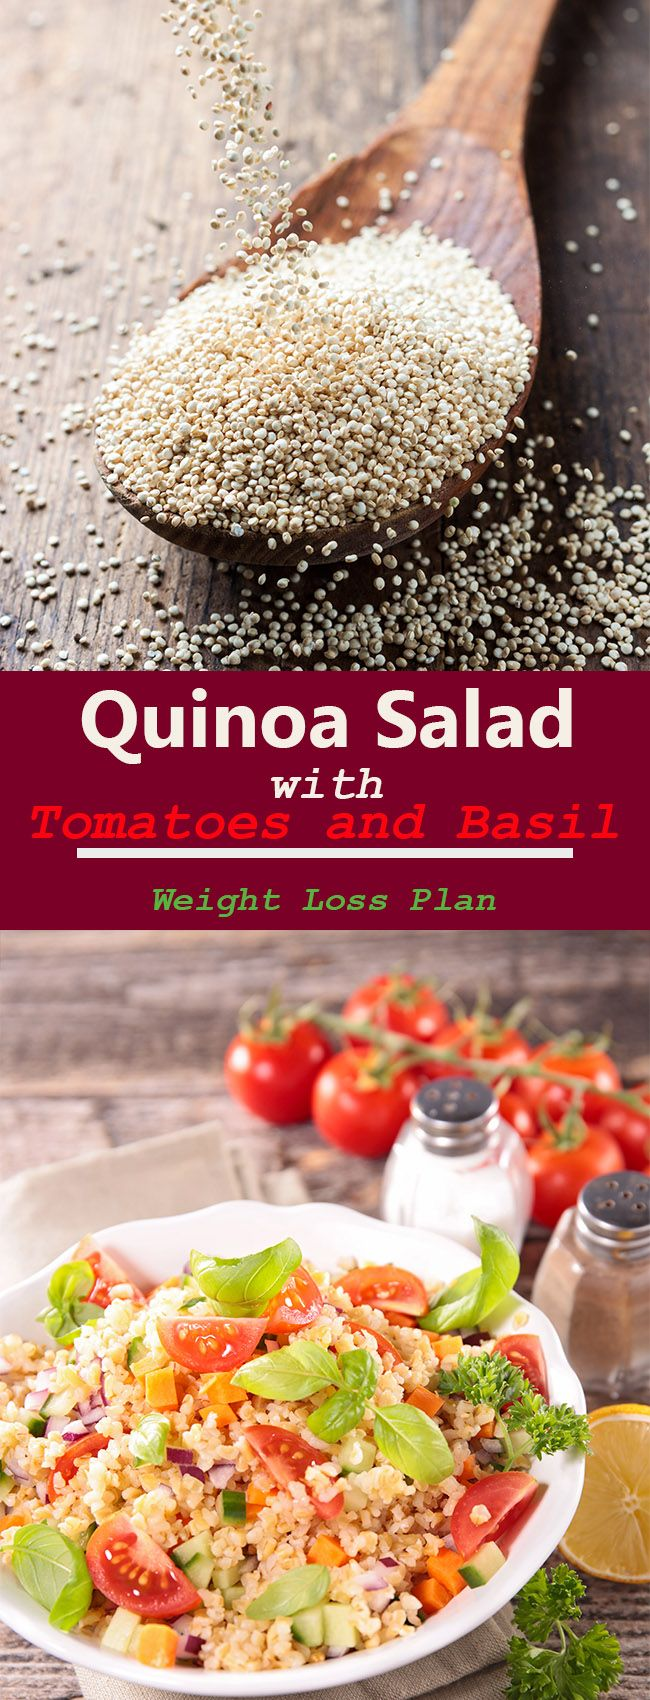 Quinoa Salad with Tomatoes and Basil – Weight Loss Plan – Perfect Body Secret